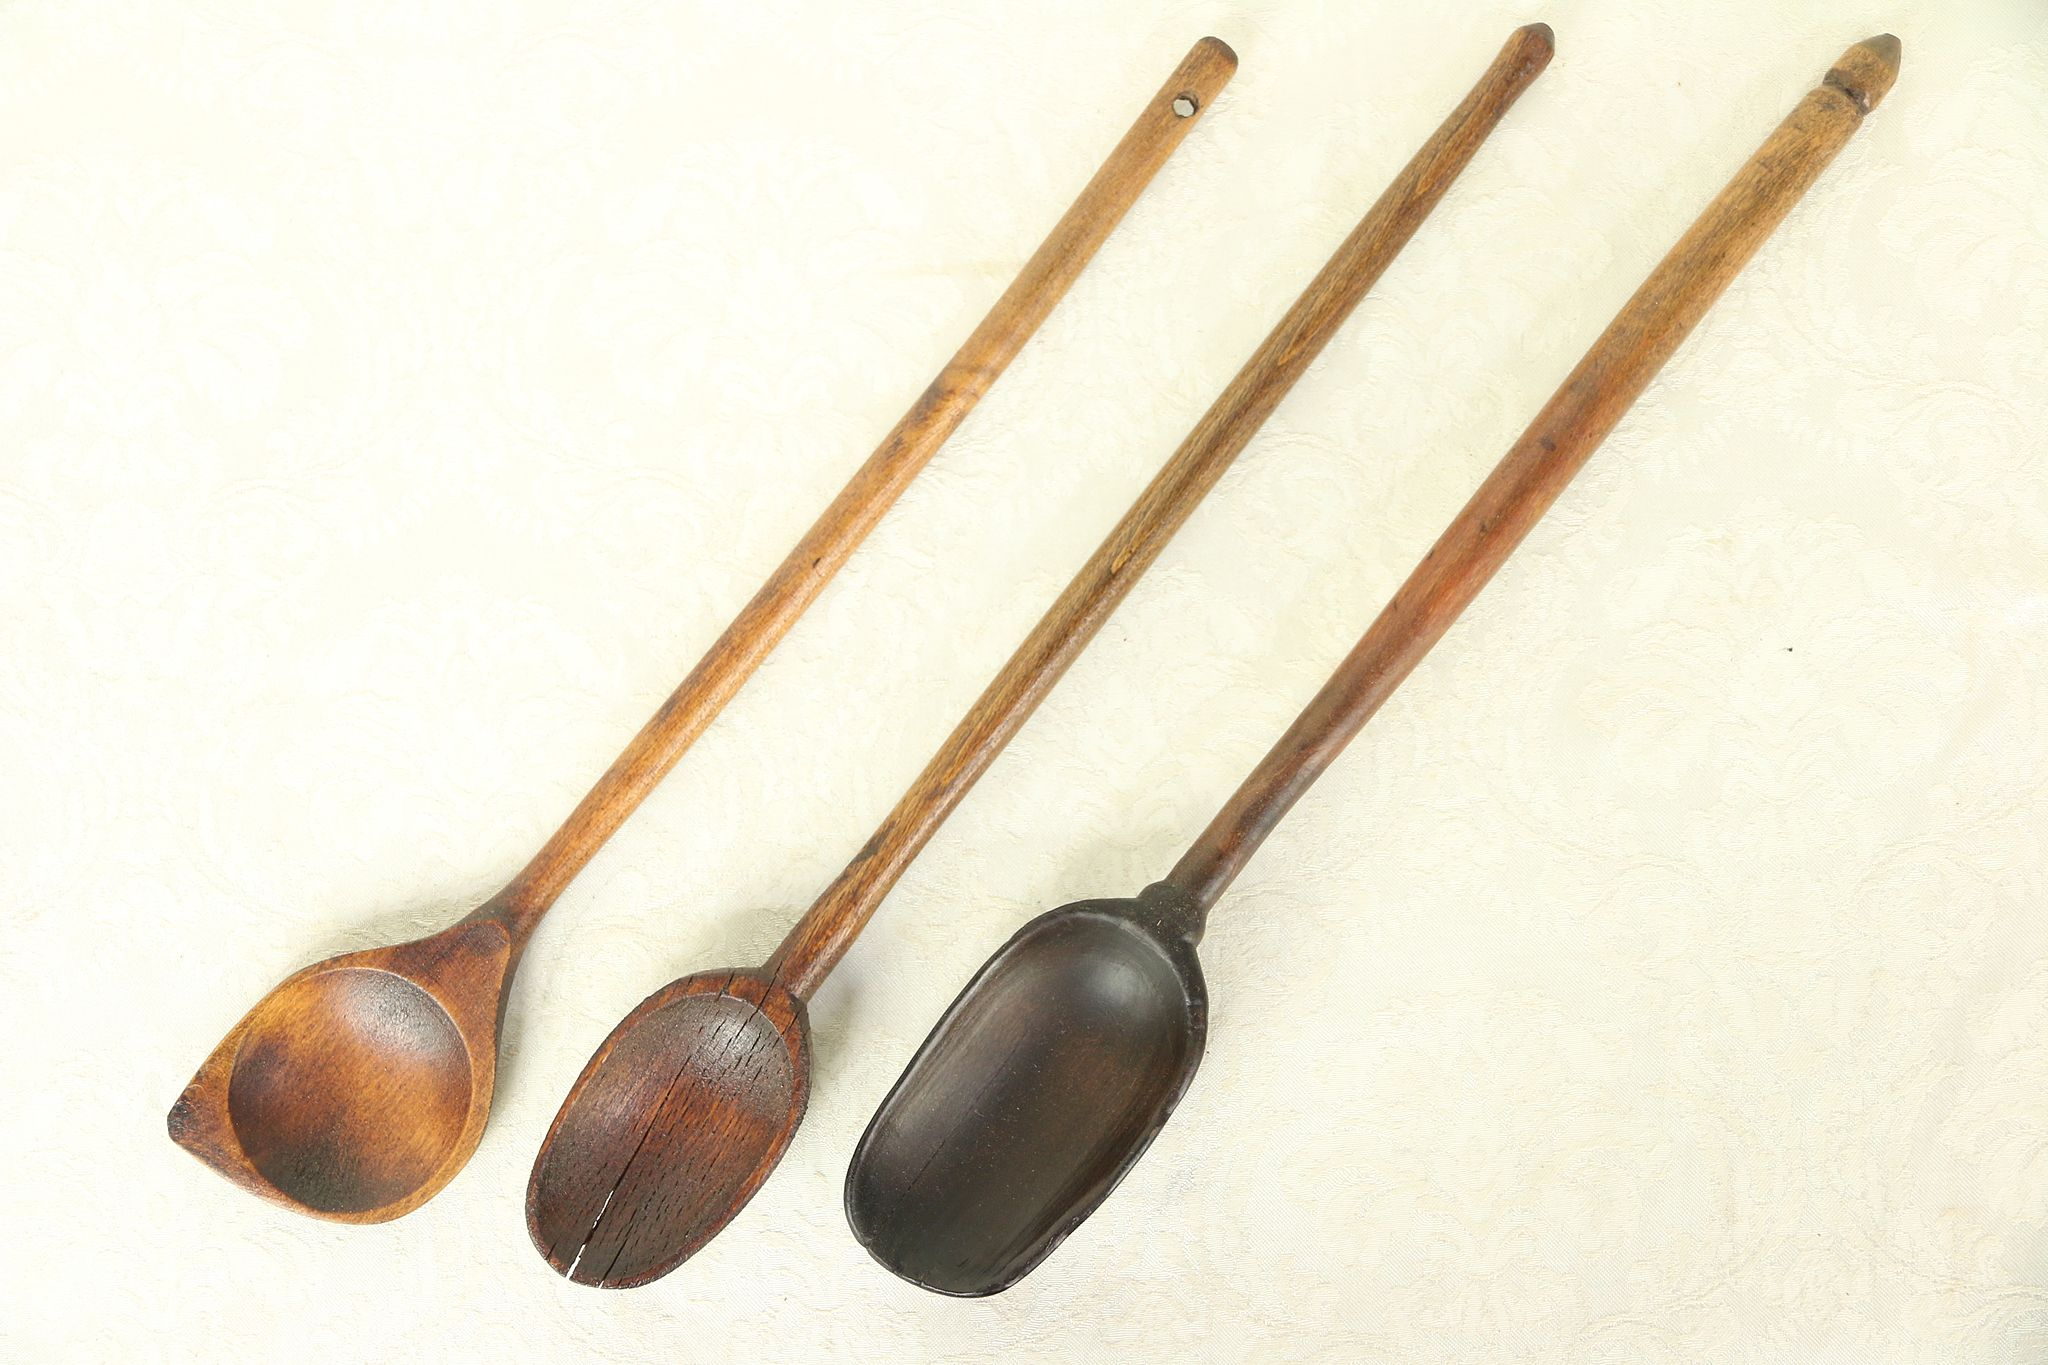 Vintage Hand Carved Wooden Spoon